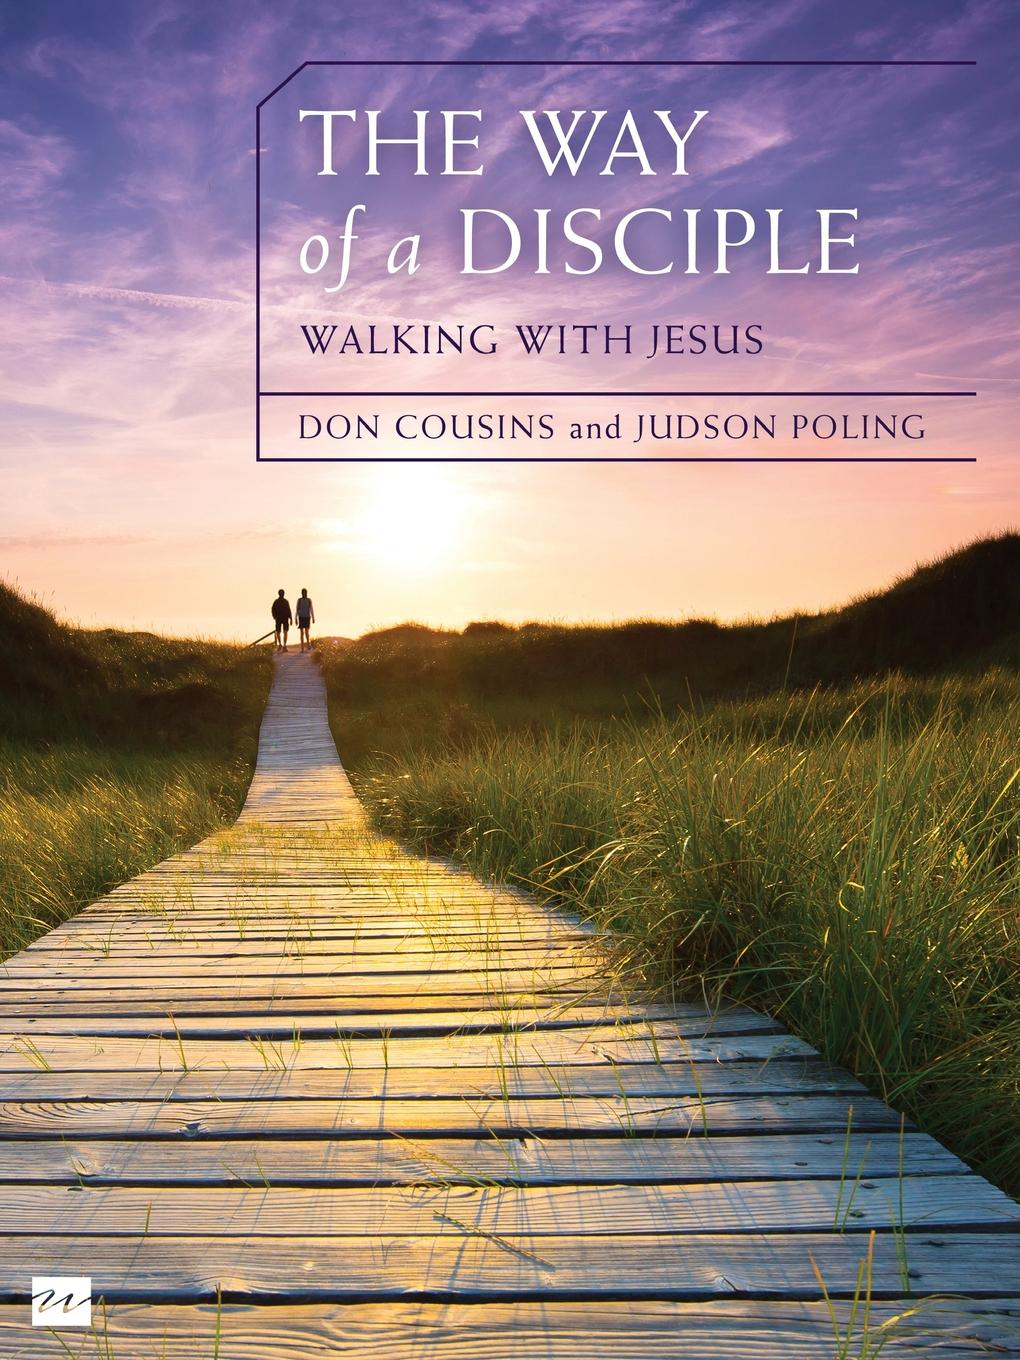 Don Cousins, Judson Poling The Way of a Disciple. Walking with Jesus: How to Walk with God, Live His Word, Contribute to His Work, and Make a Difference in the World ice age prehistoric animal a mammoth in a walk collection children toys a mammoth in a walk